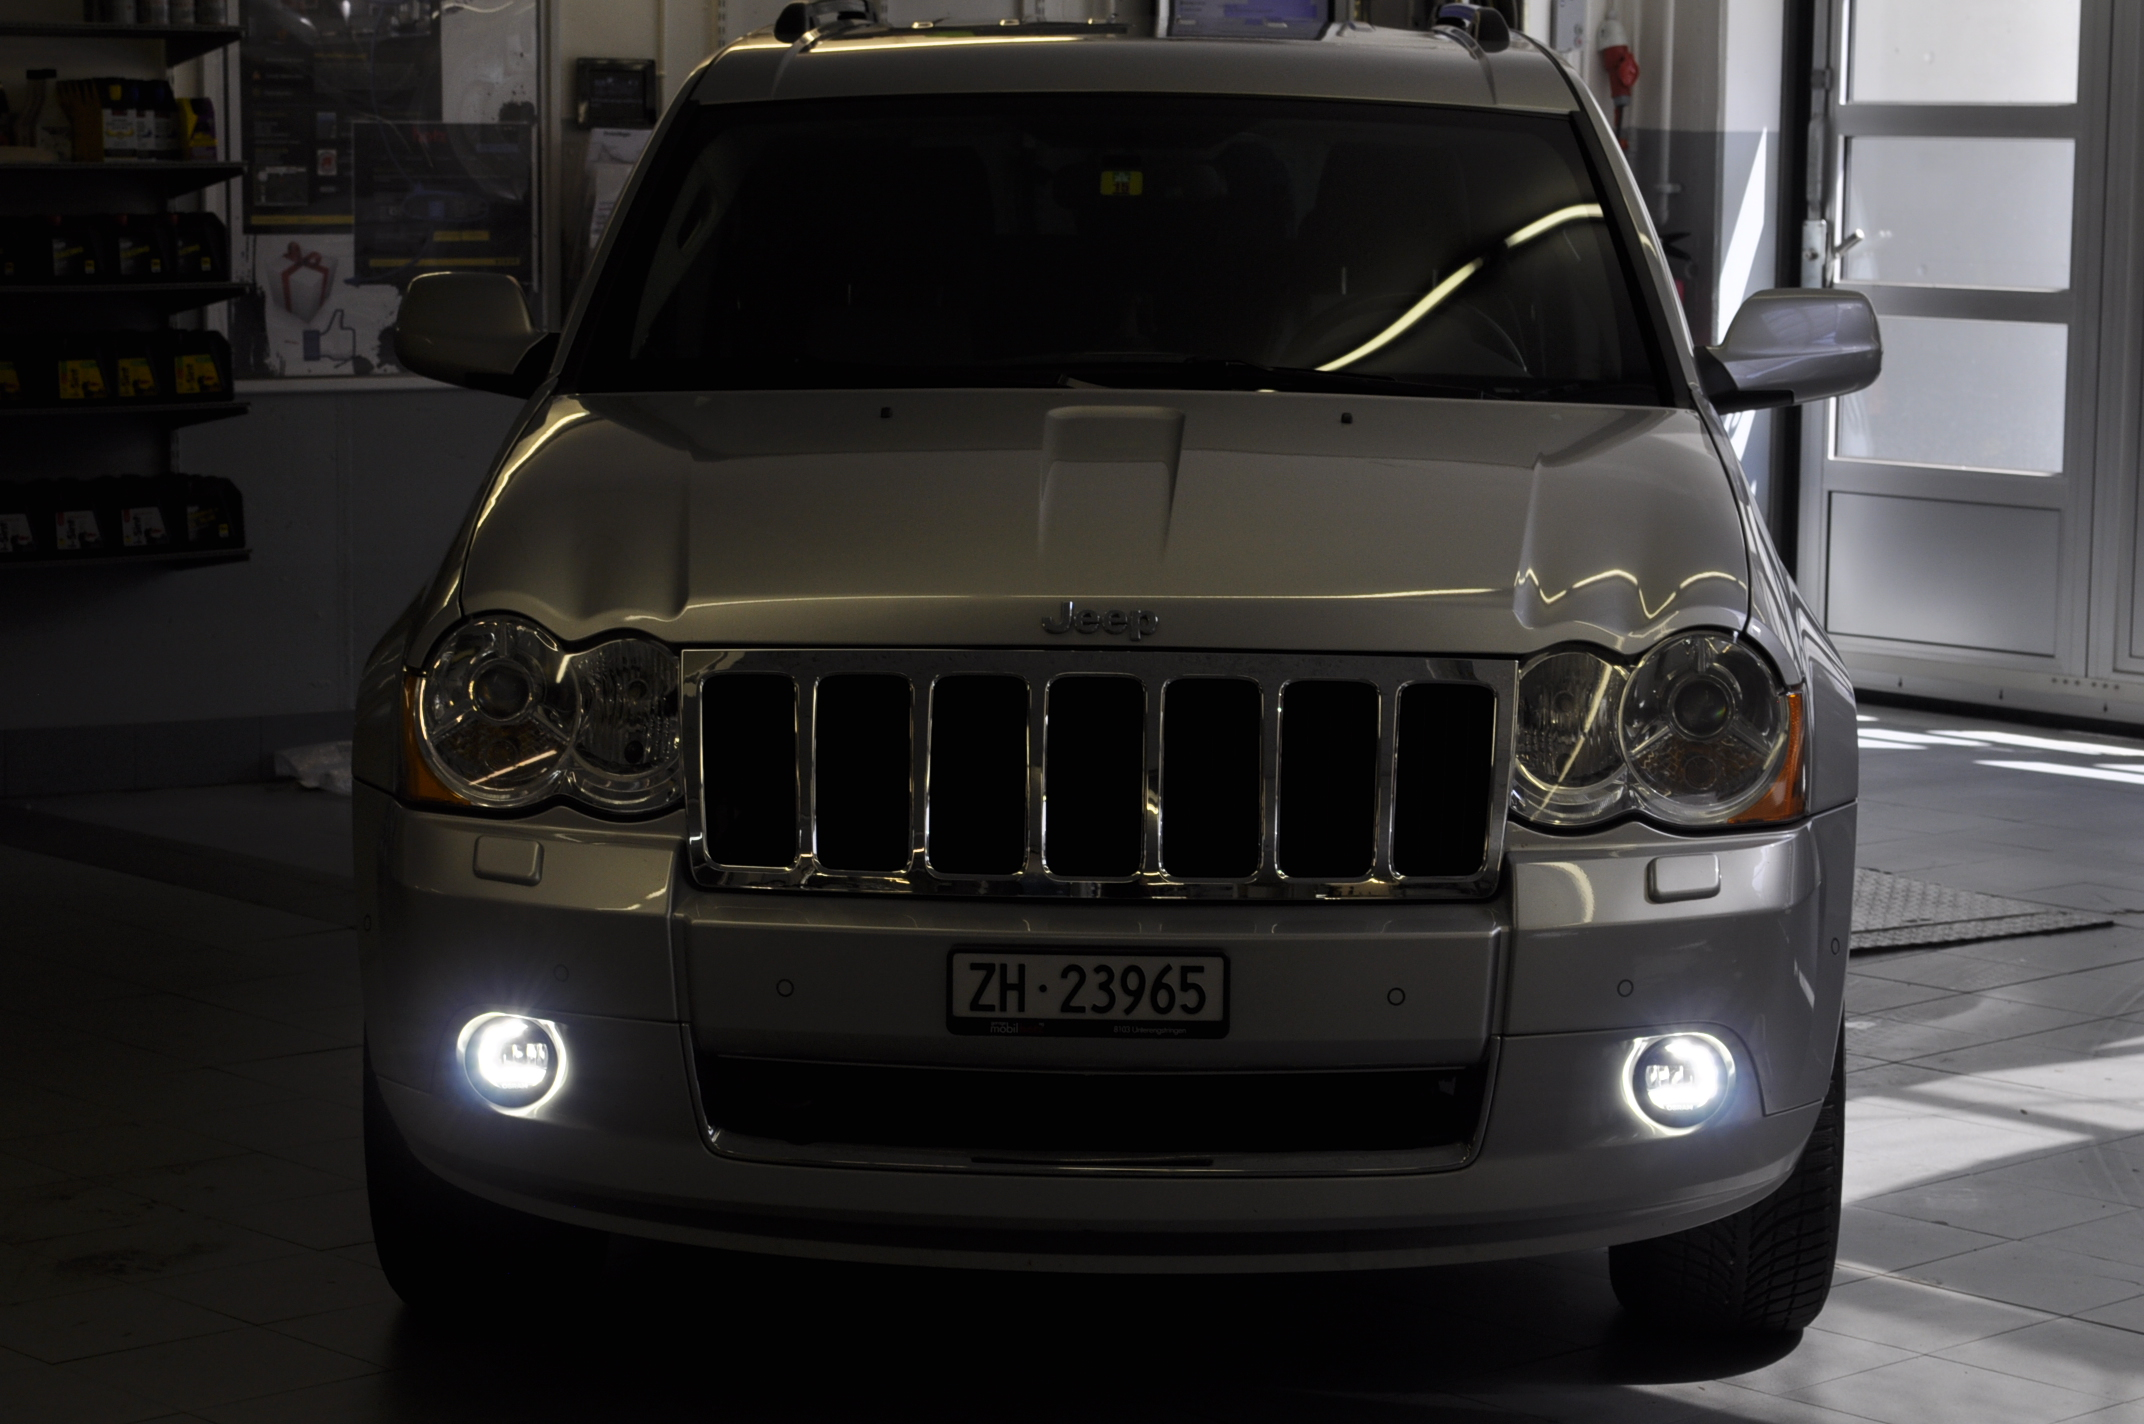 jeep grand cherokee led tagfahrlicht nachr sten garage. Black Bedroom Furniture Sets. Home Design Ideas